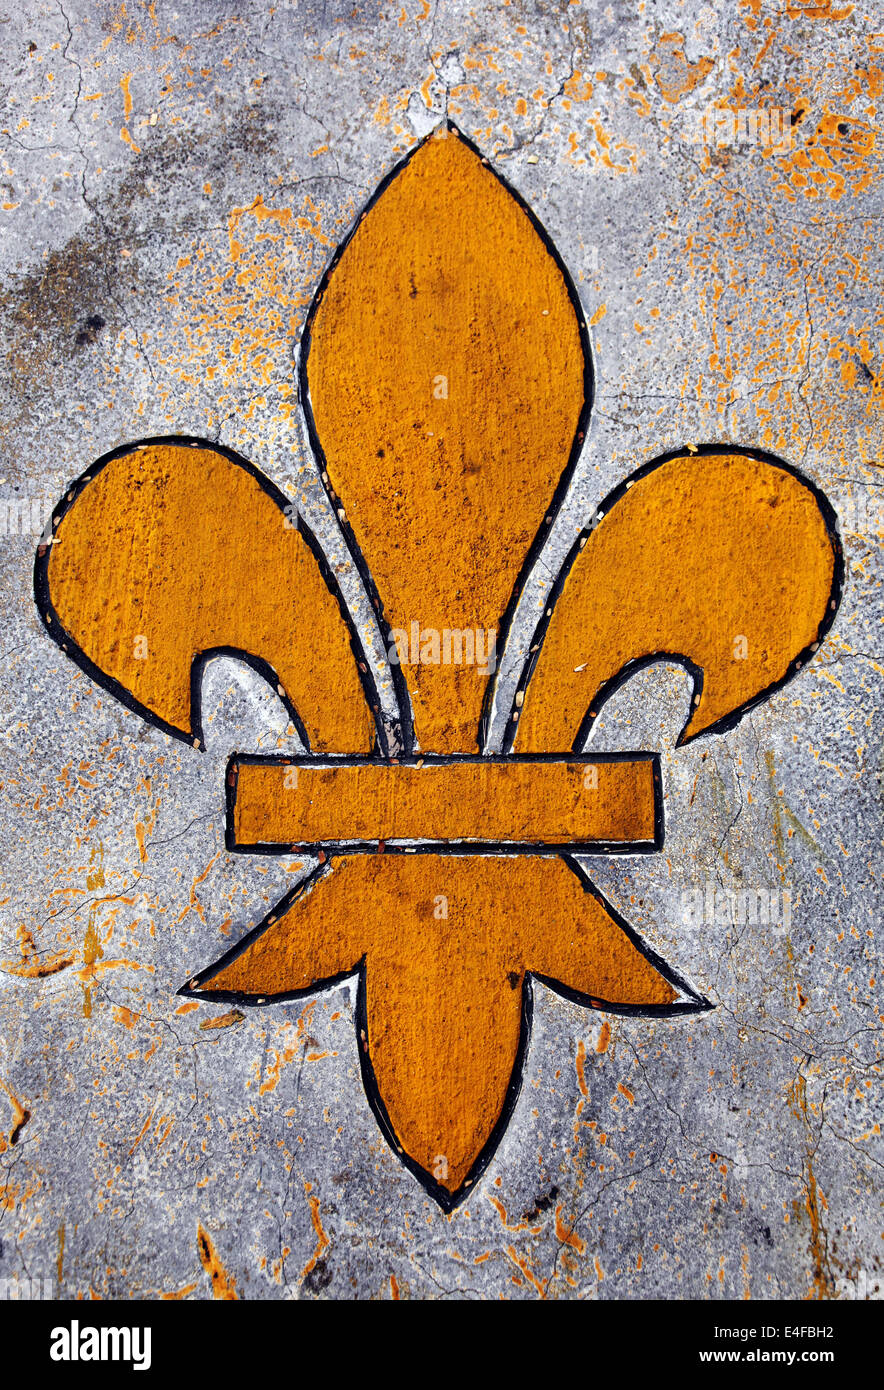 Its a photo of a royal symbol of a golden lily flower its a its a photo of a royal symbol of a golden lily flower its a link to the king queen of france or europe buycottarizona